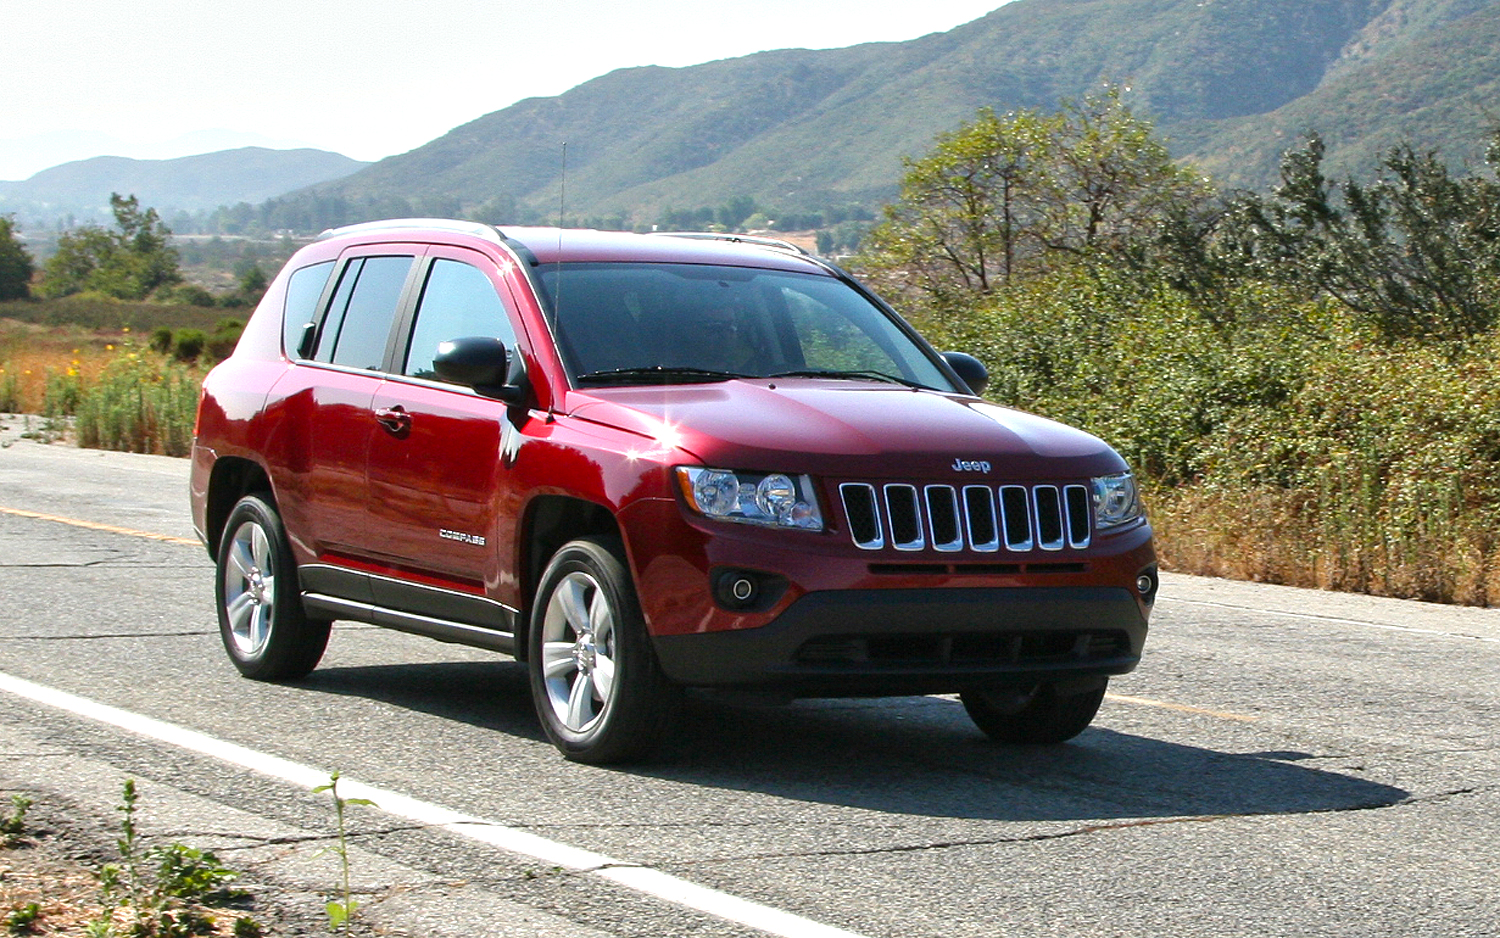 2013 Jeep Compass Suv 5-door